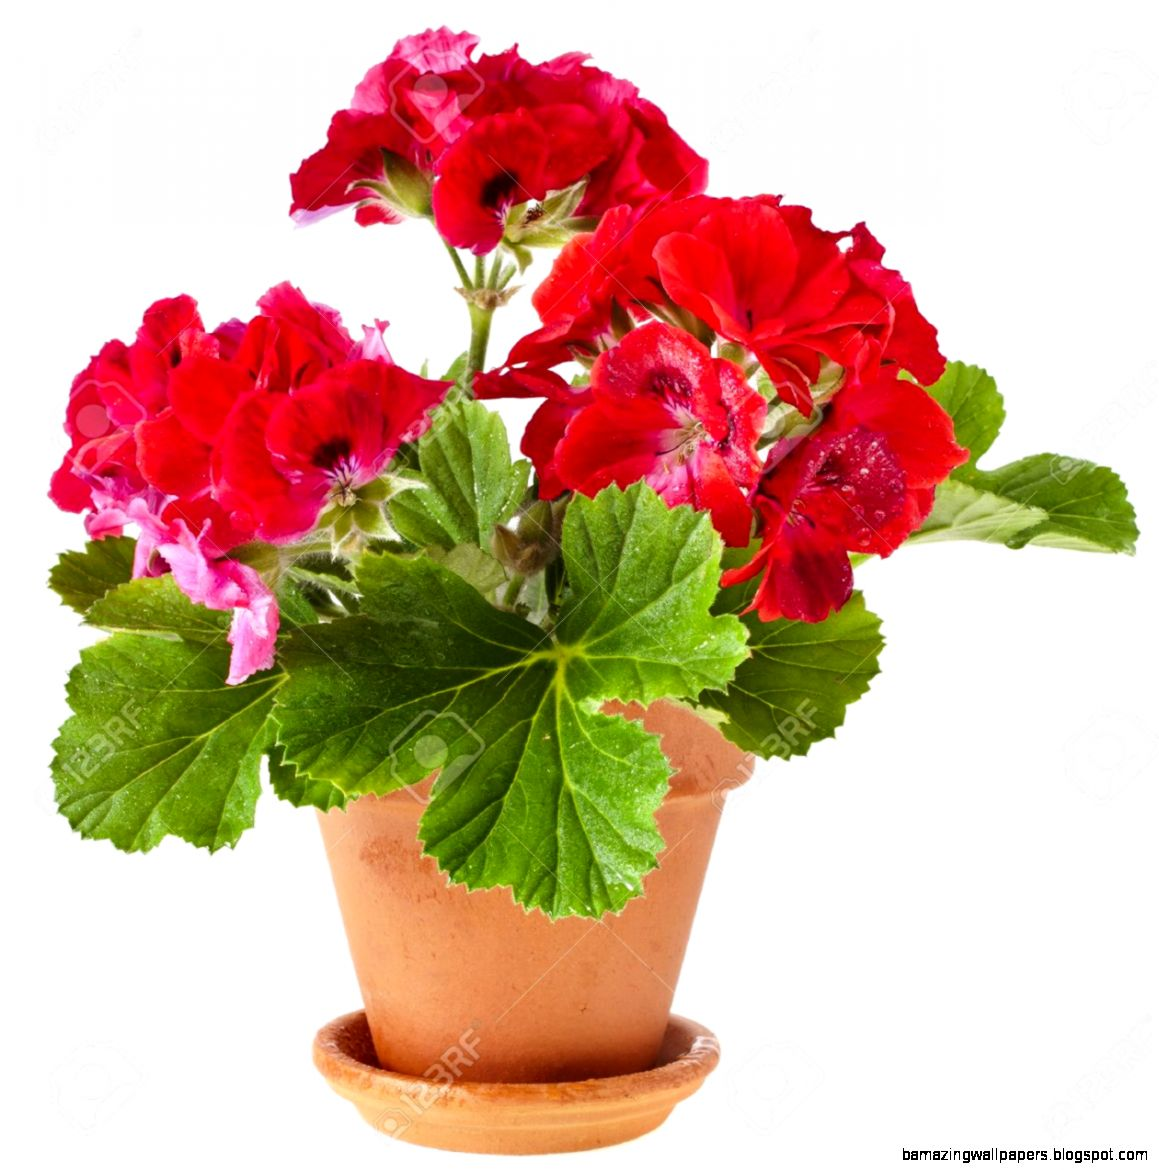 Red Geranium Flower Potted Plant Isolated On White Background